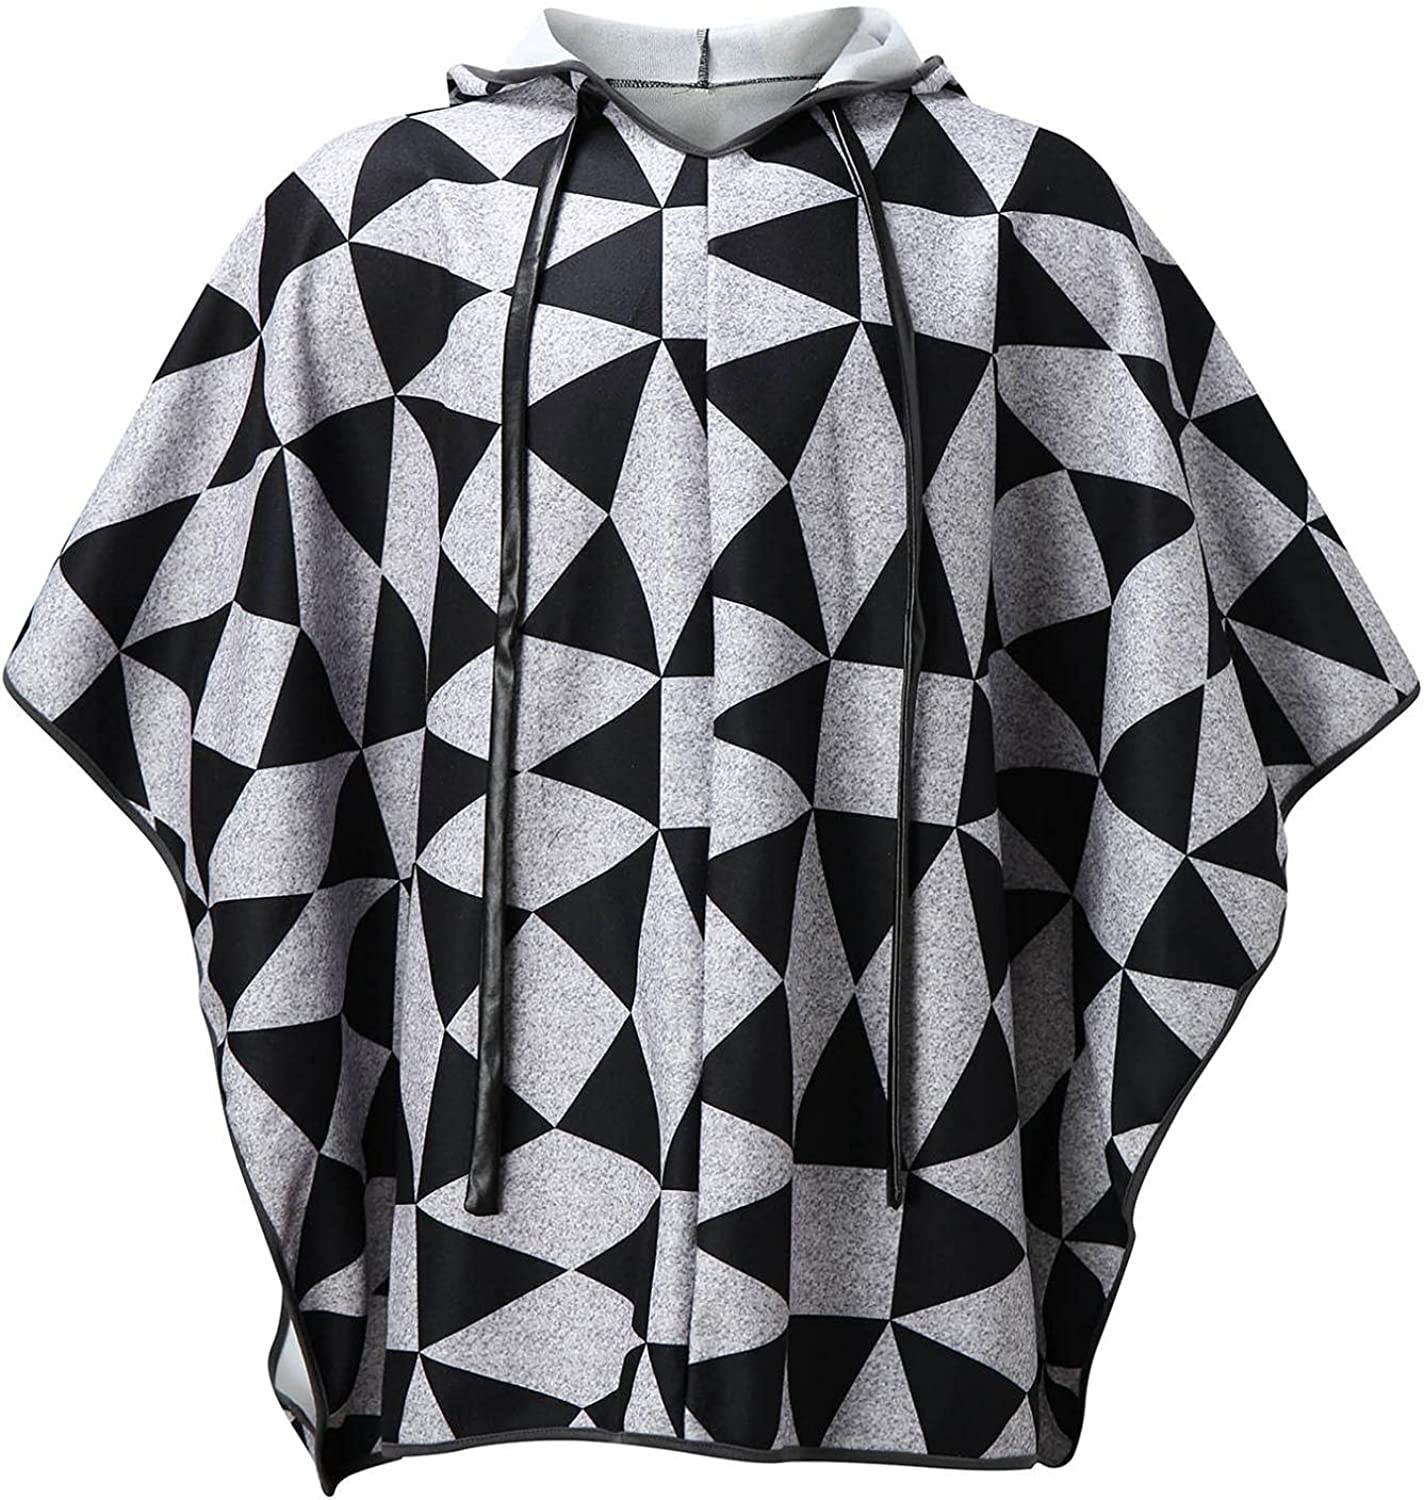 Poncho for Men Plaid Comfortable Home Clothes for Men House Coat Sweatshirts Long Wool Alpaca Poncho Hooded